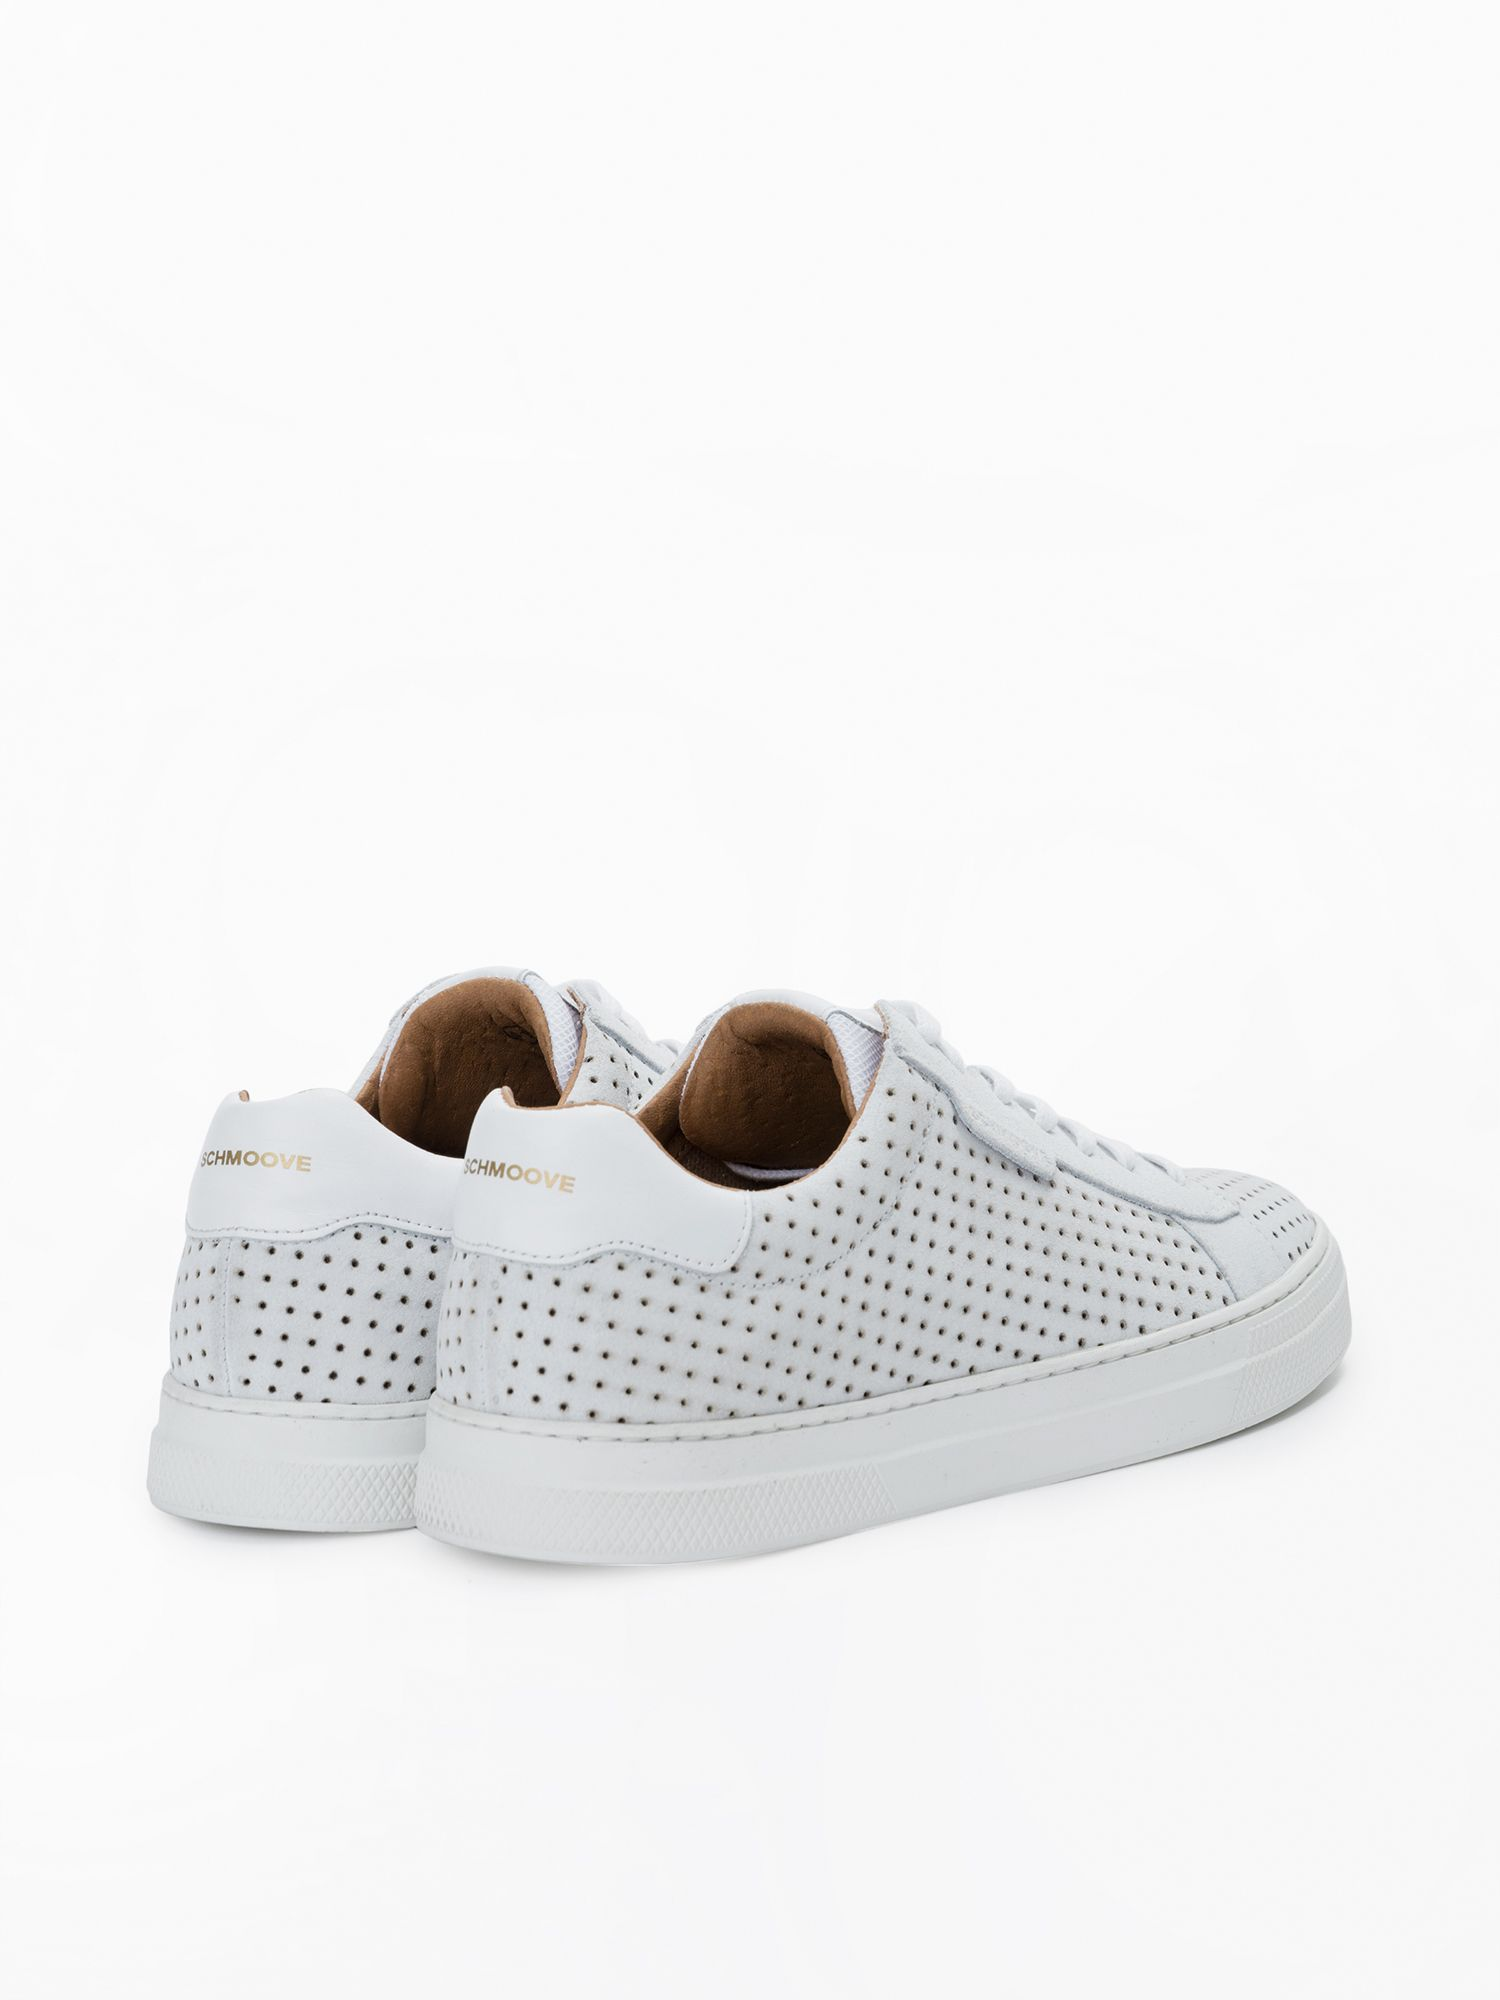 schmoove.fr Spark Clay - Punch Suede - White/White